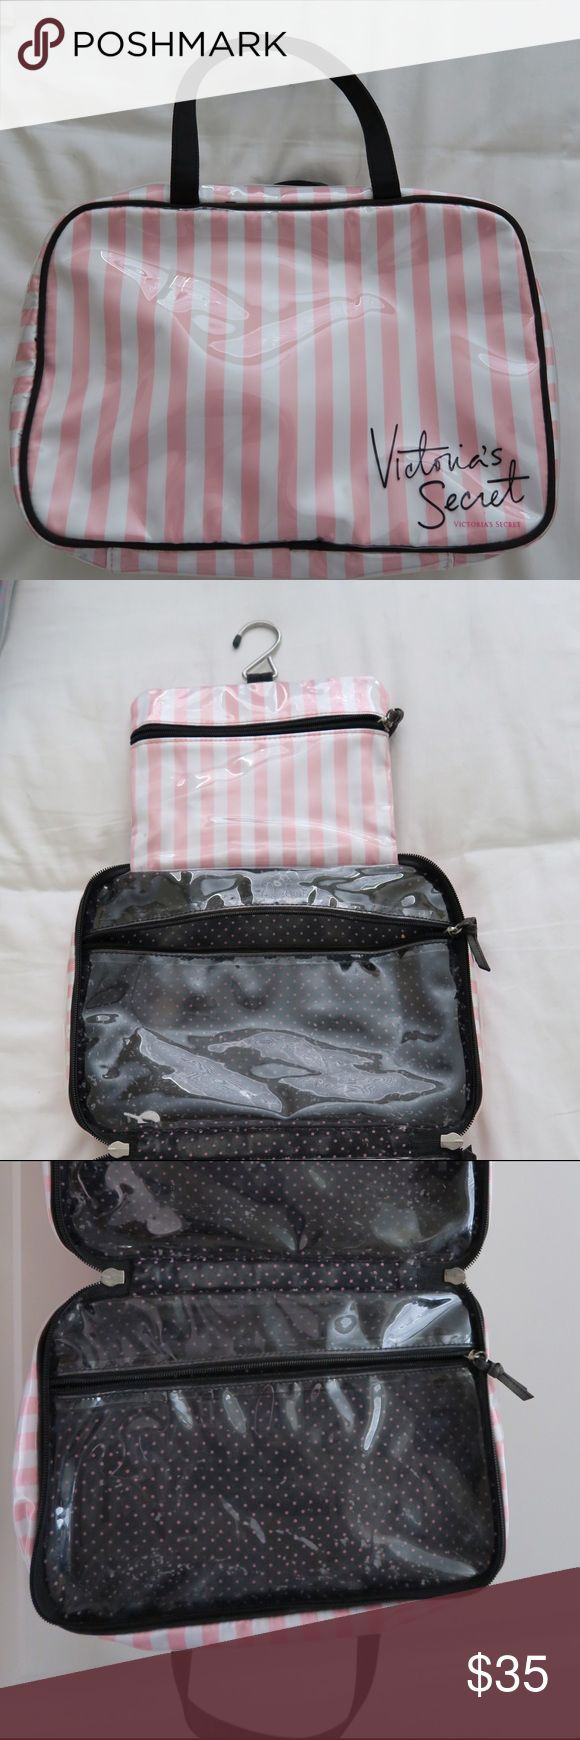 Victoria Secret Makeup Carrying Case USED!! Never traveled with this bag but it held extra makeup items. Had it for around 2 months. Has minimal wear and a few stains from makeup but does not take away from the integrity of the bag. Willing to negotiate on price!! Victoria's Secret Bags Cosmetic Bags & Cases